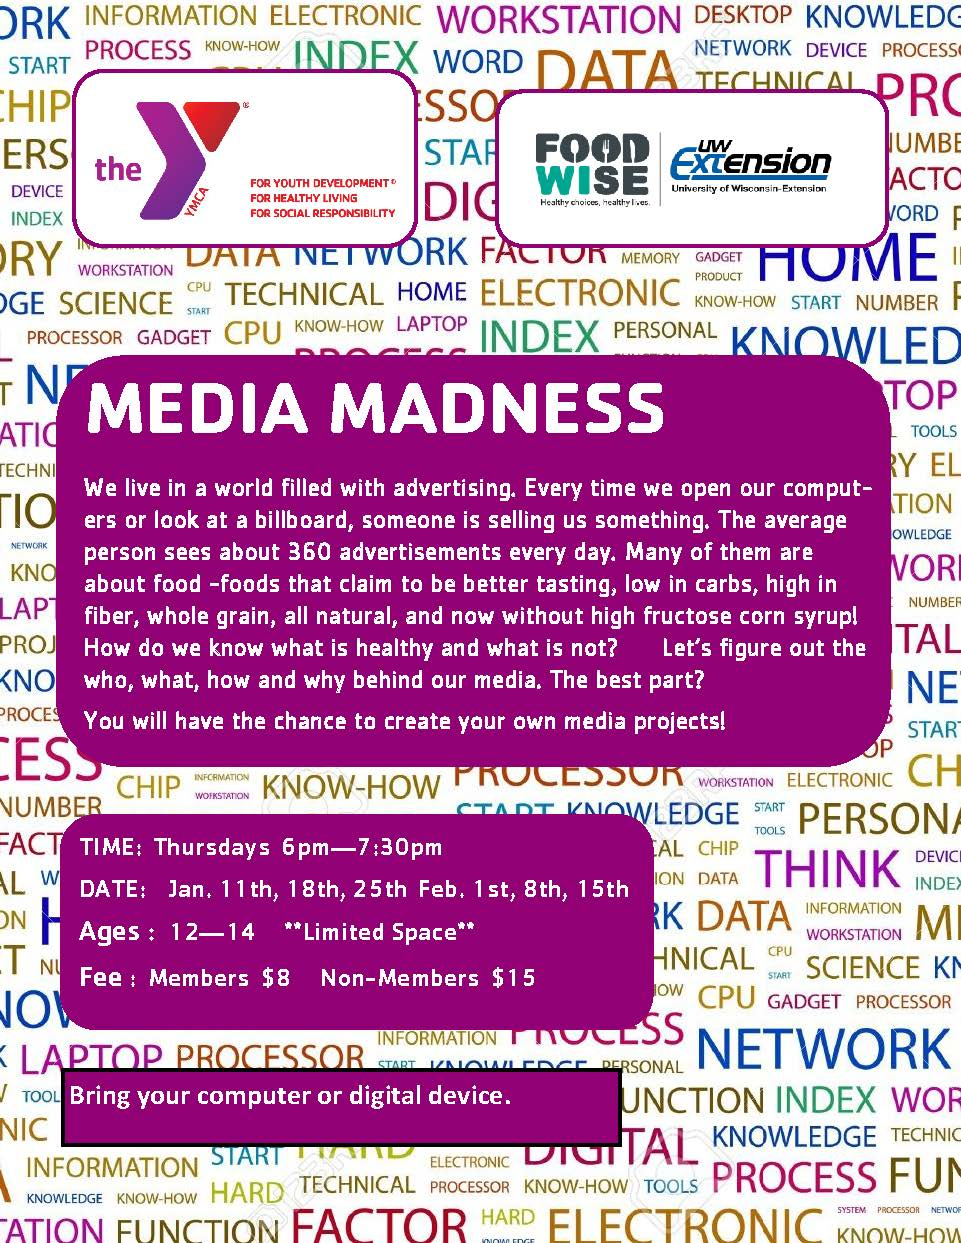 http://mtrymca.org/sites/mtrymca.org/assets/images/programs/MediaMadness.jpg